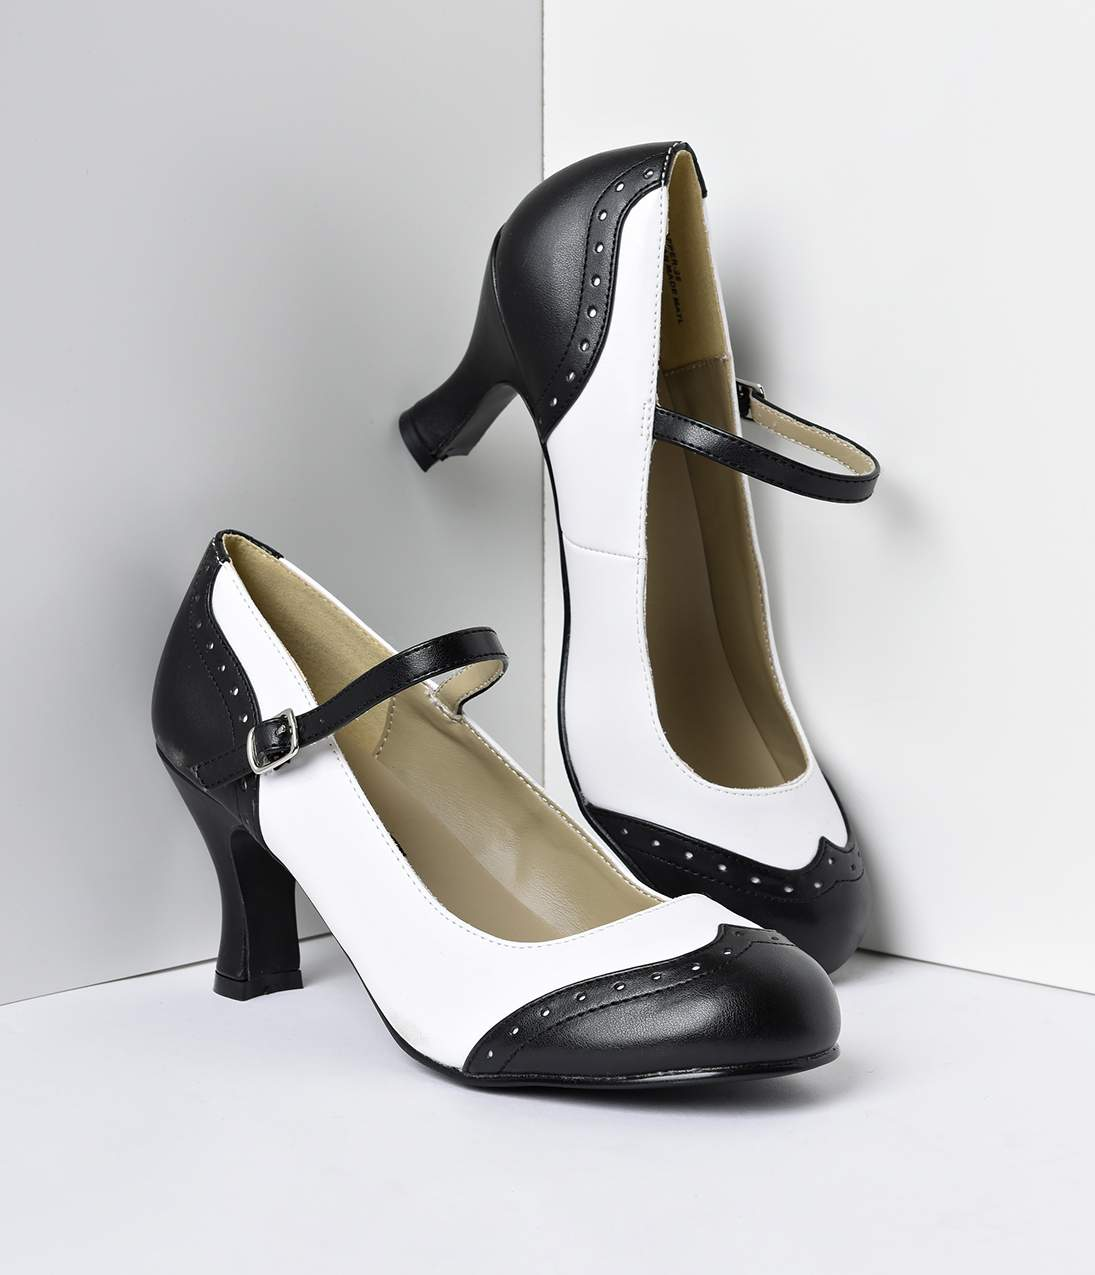 Rockabilly Shoes- Heels, Pumps, Boots, Flats Black  White Mary Jane Kitten Spectator Heels $58.00 AT vintagedancer.com